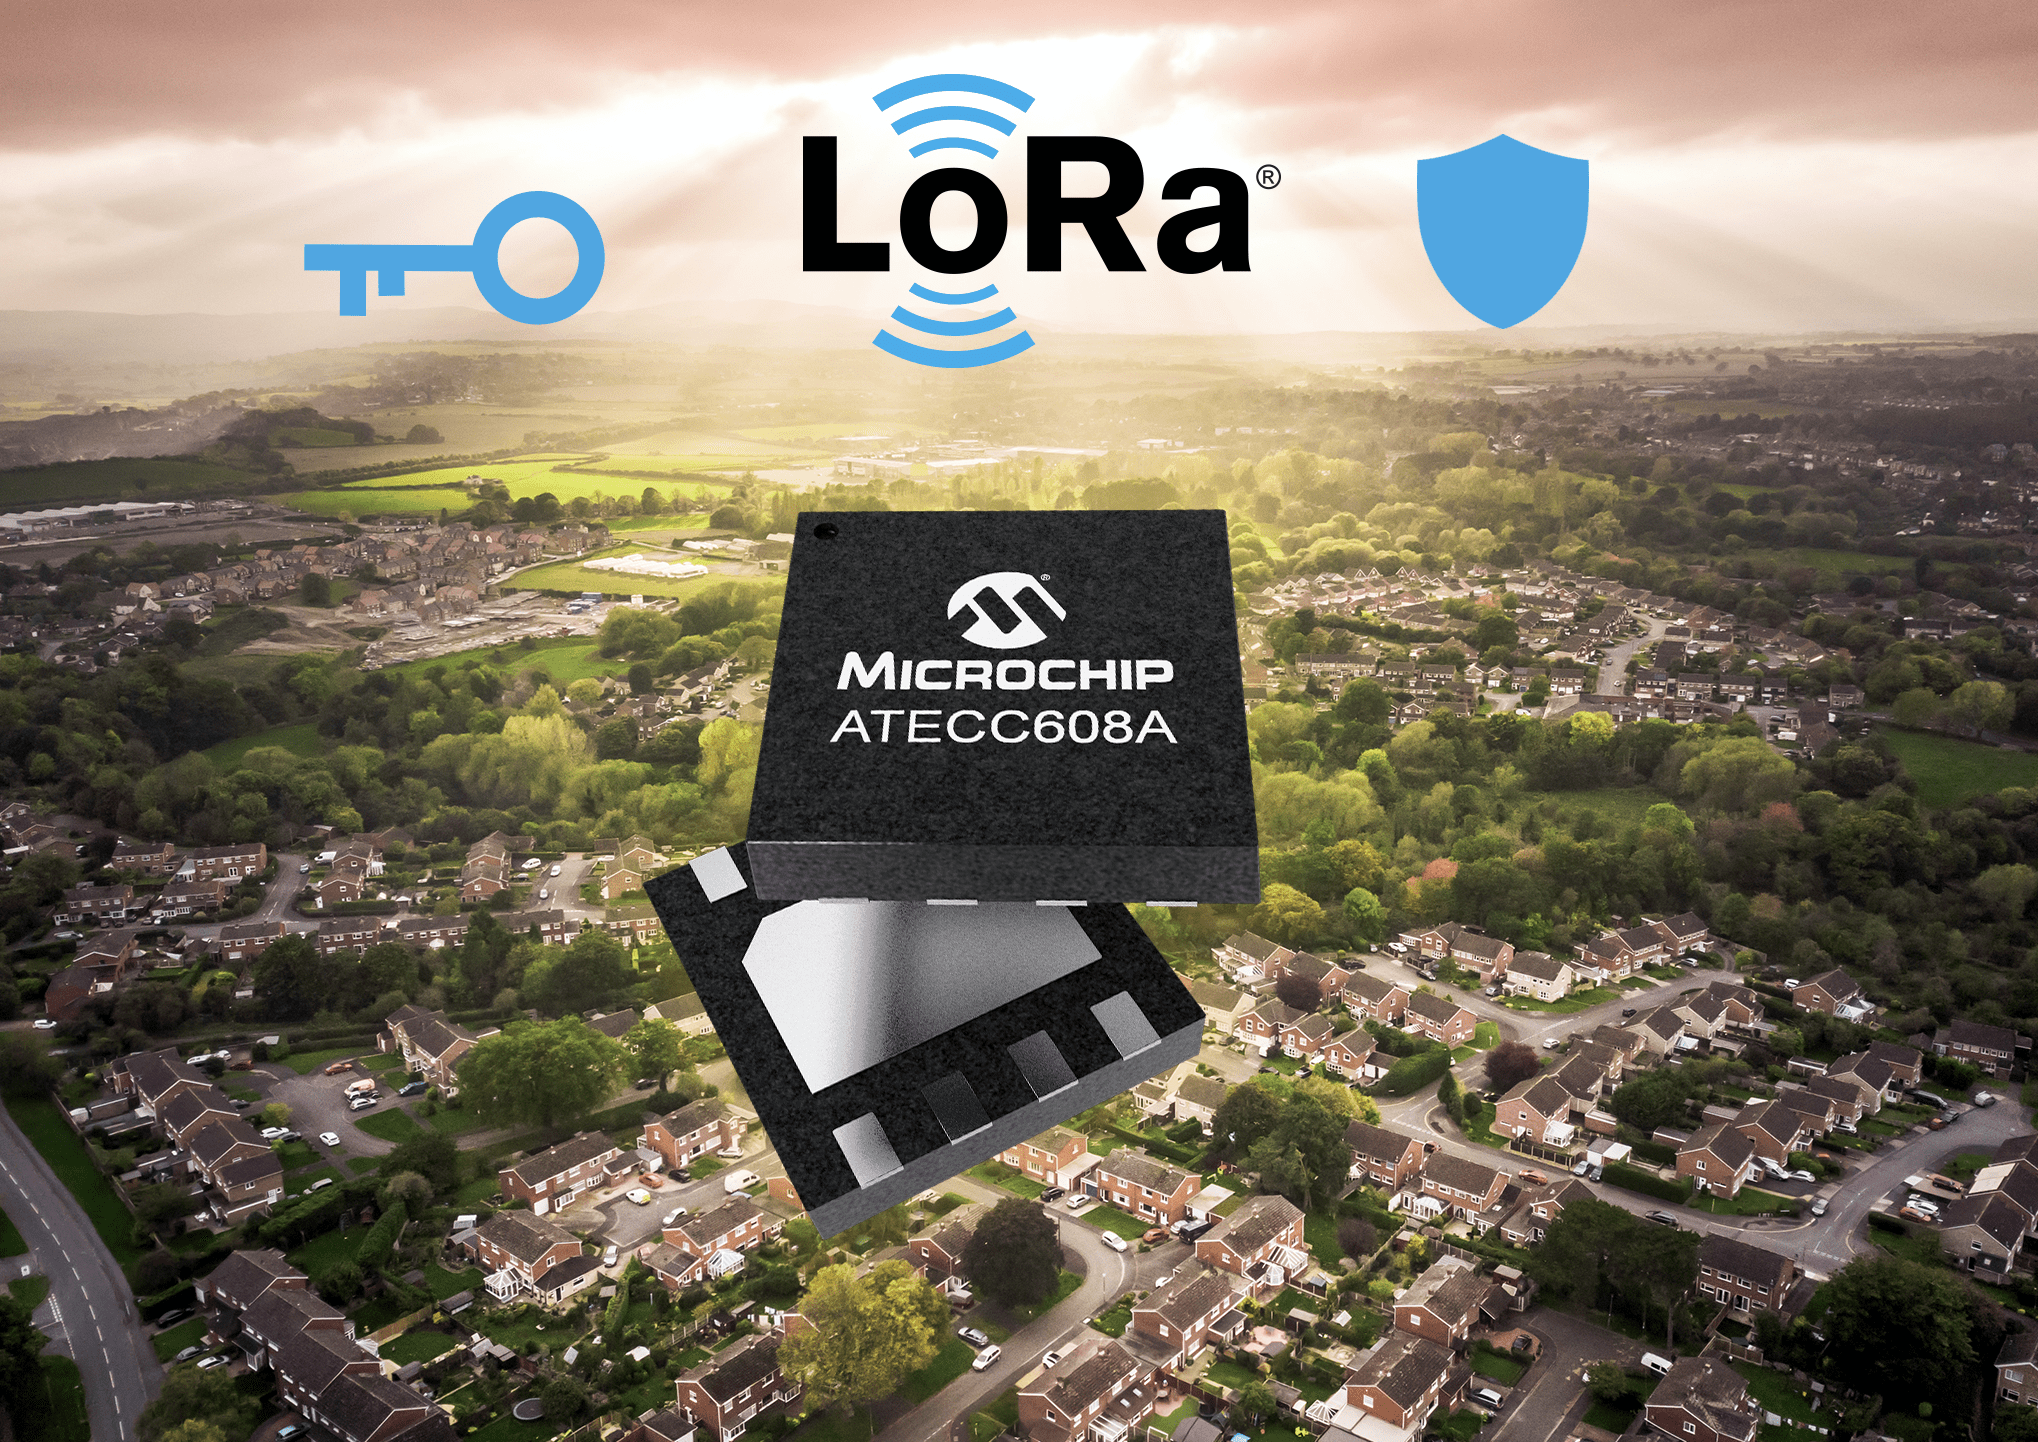 Microchip Release Industry's 1st End-to-End LoRa®Security